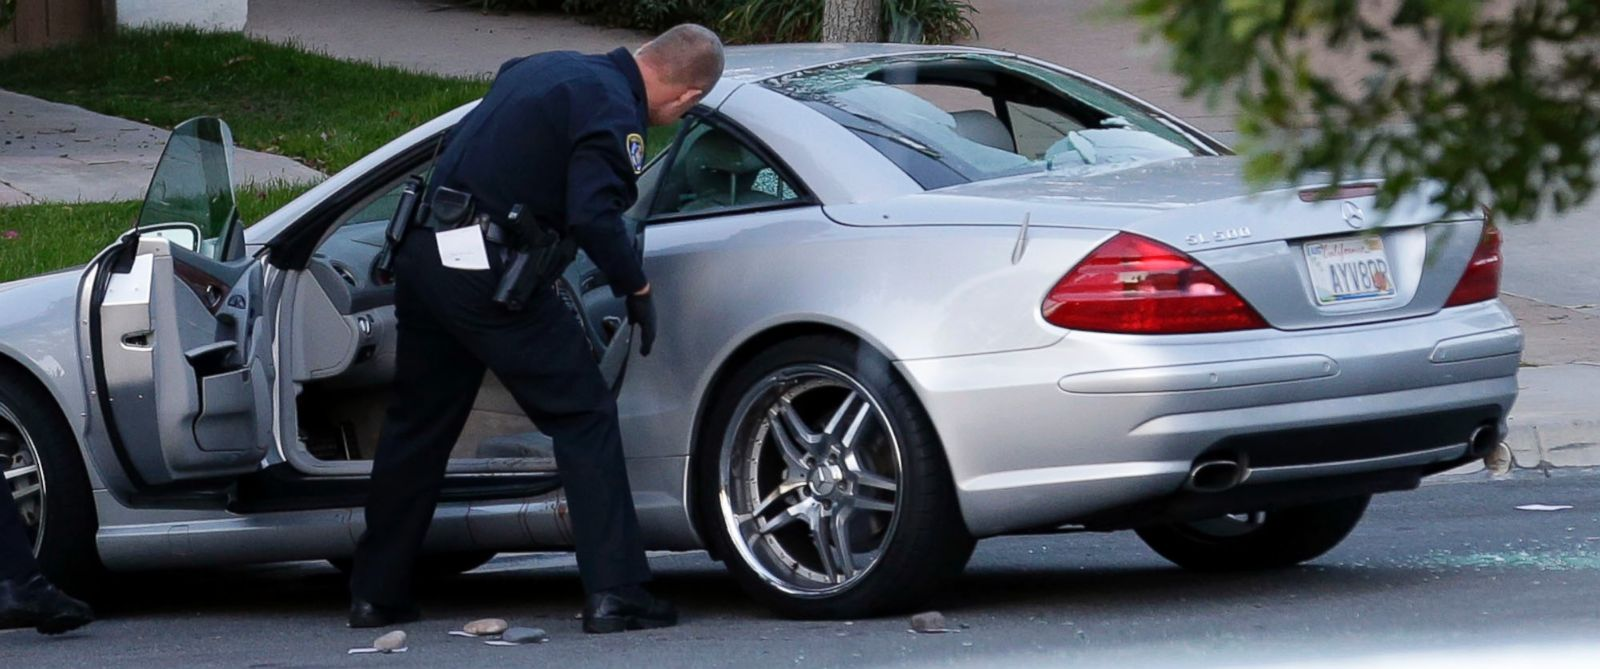 PHOTO: Police examine the scene following a shooting Tuesday, Feb. 10, 2015, in San Diego. CBS affiliate KFMB-TV says sports anchor Kyle Kraska was attacked Tuesday afternoon in the Scripps Ranch area of the city.